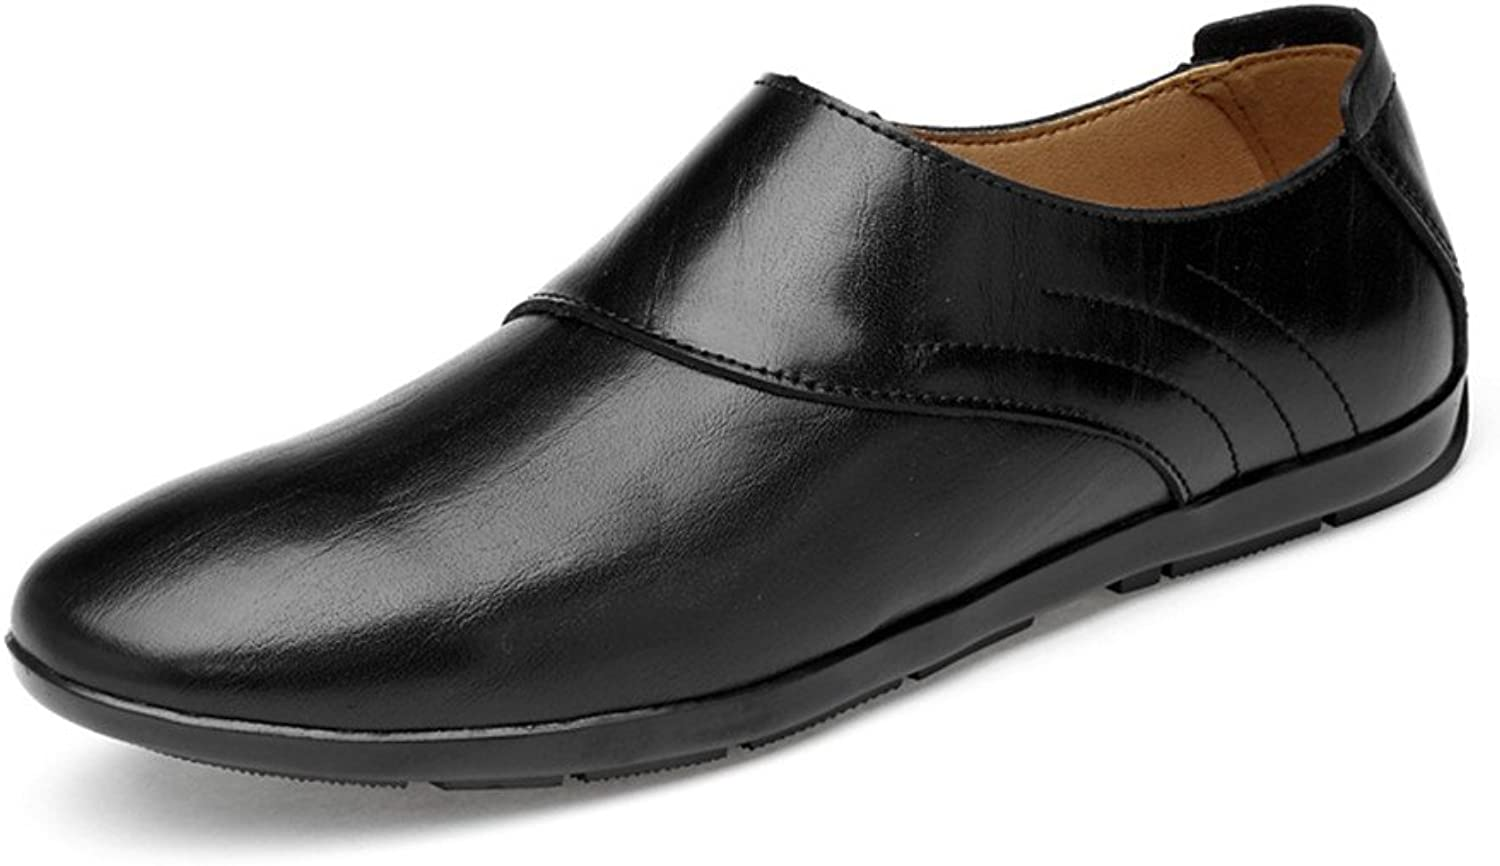 XHD- Classic shoes Classic Men's Loafers Casual Boat shoes Faux Leather Slip On Driving Moccasins (Hollow Optional)